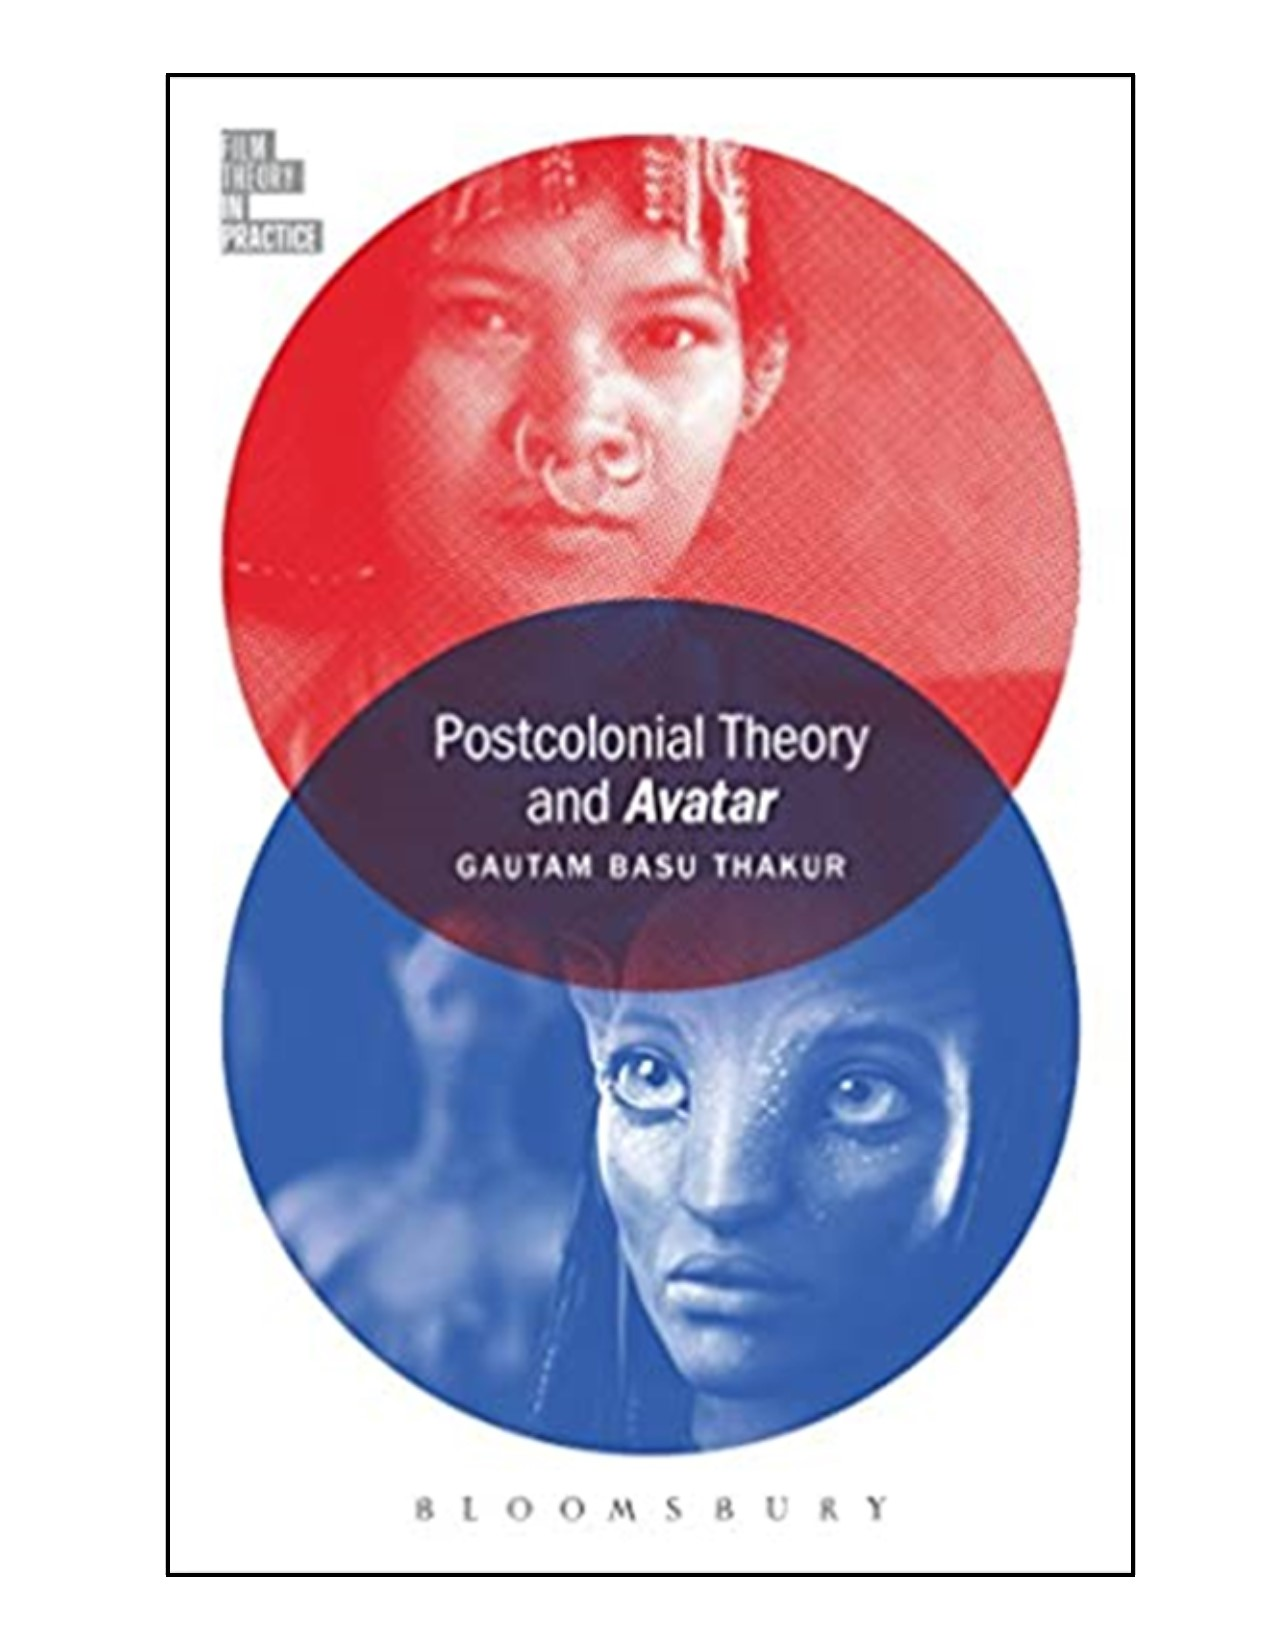 Post Colonial Theory and Avatar book cover.